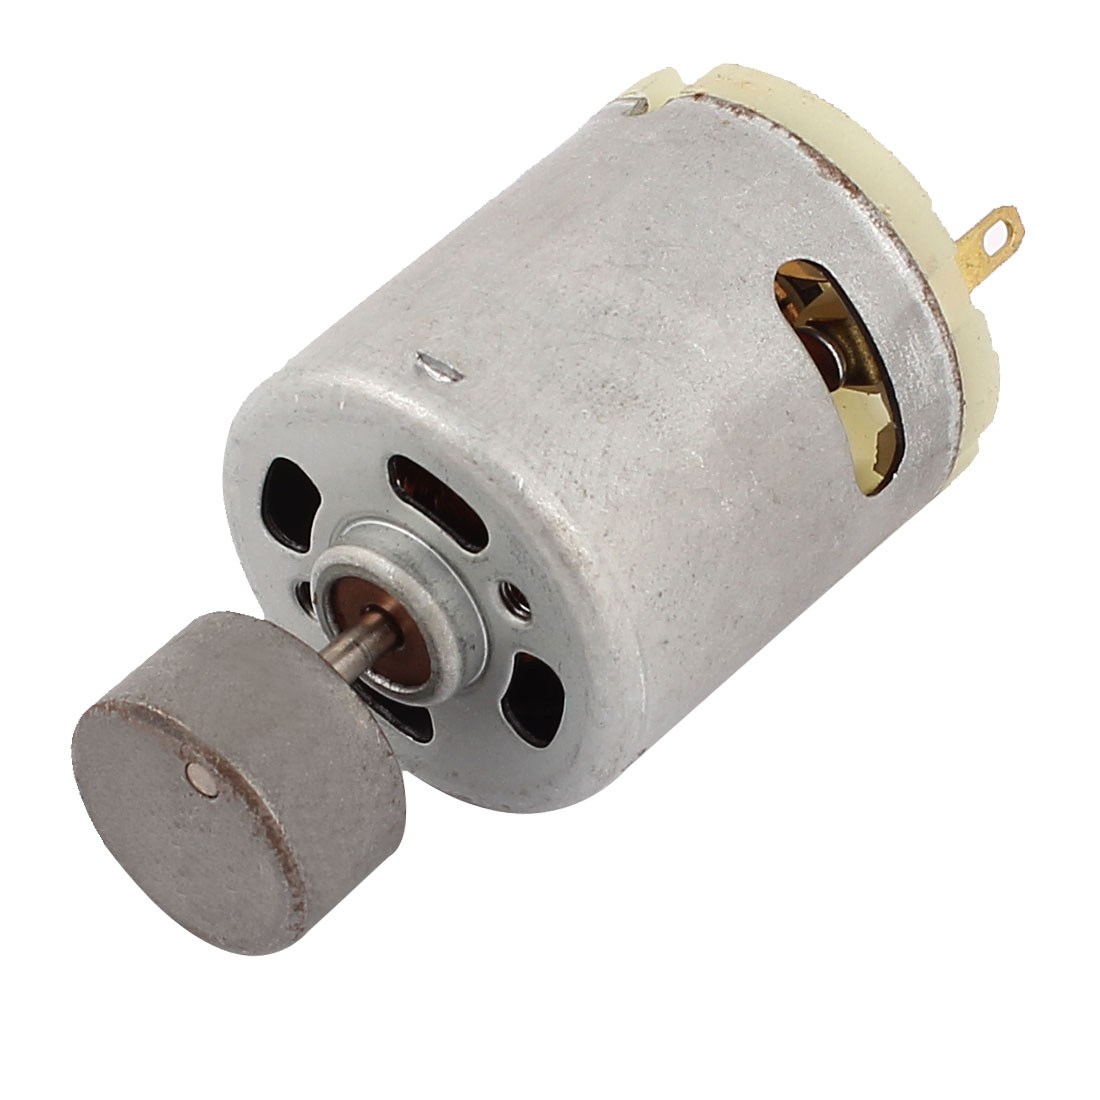 DC 12V 29700RPM High Speed Magnetic Micro Vibration Motor for Hair Dryer